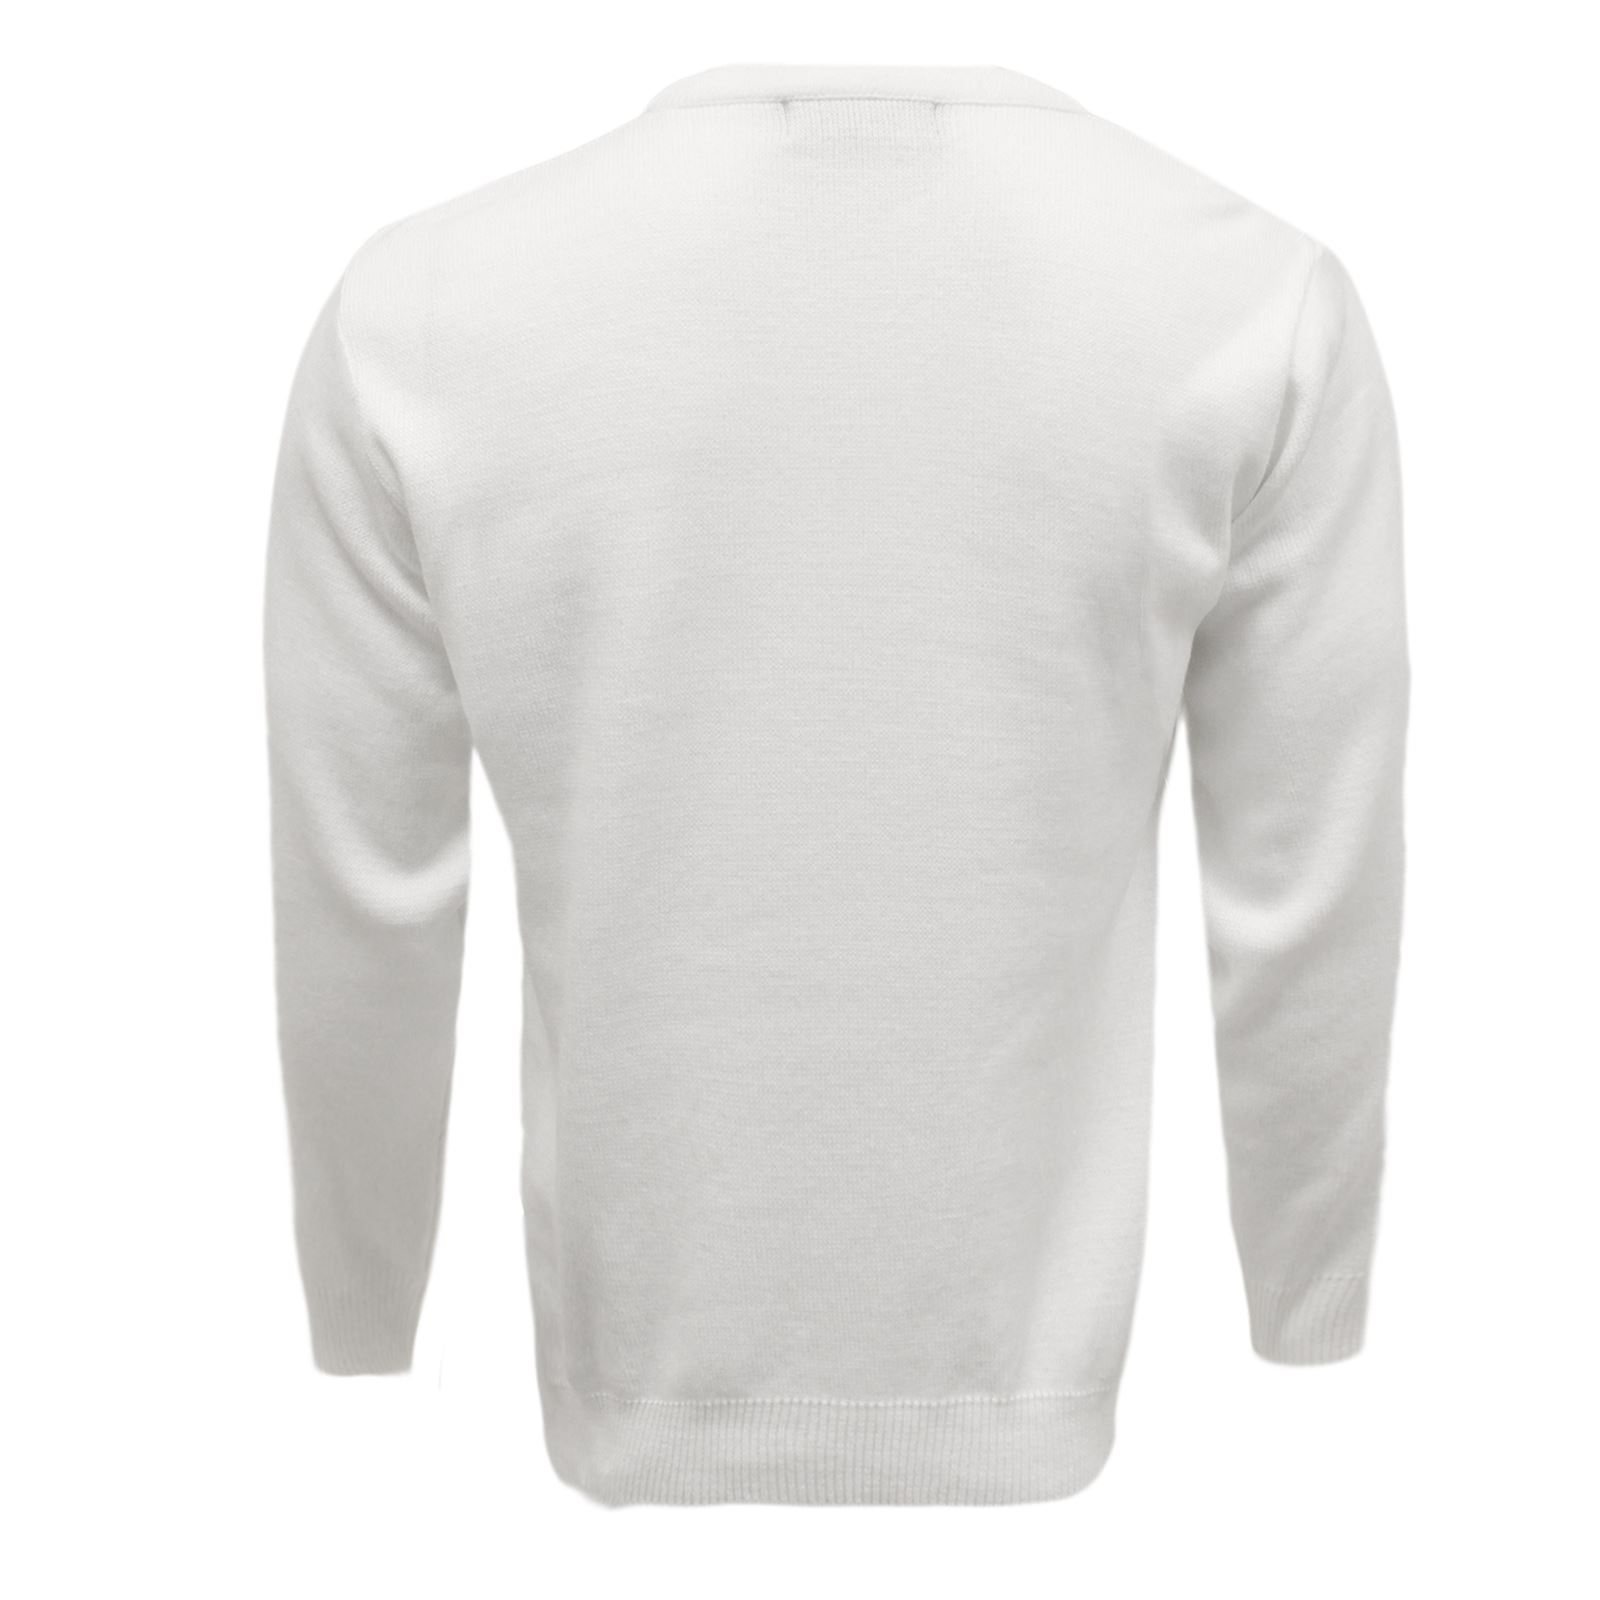 New White Sweater 57